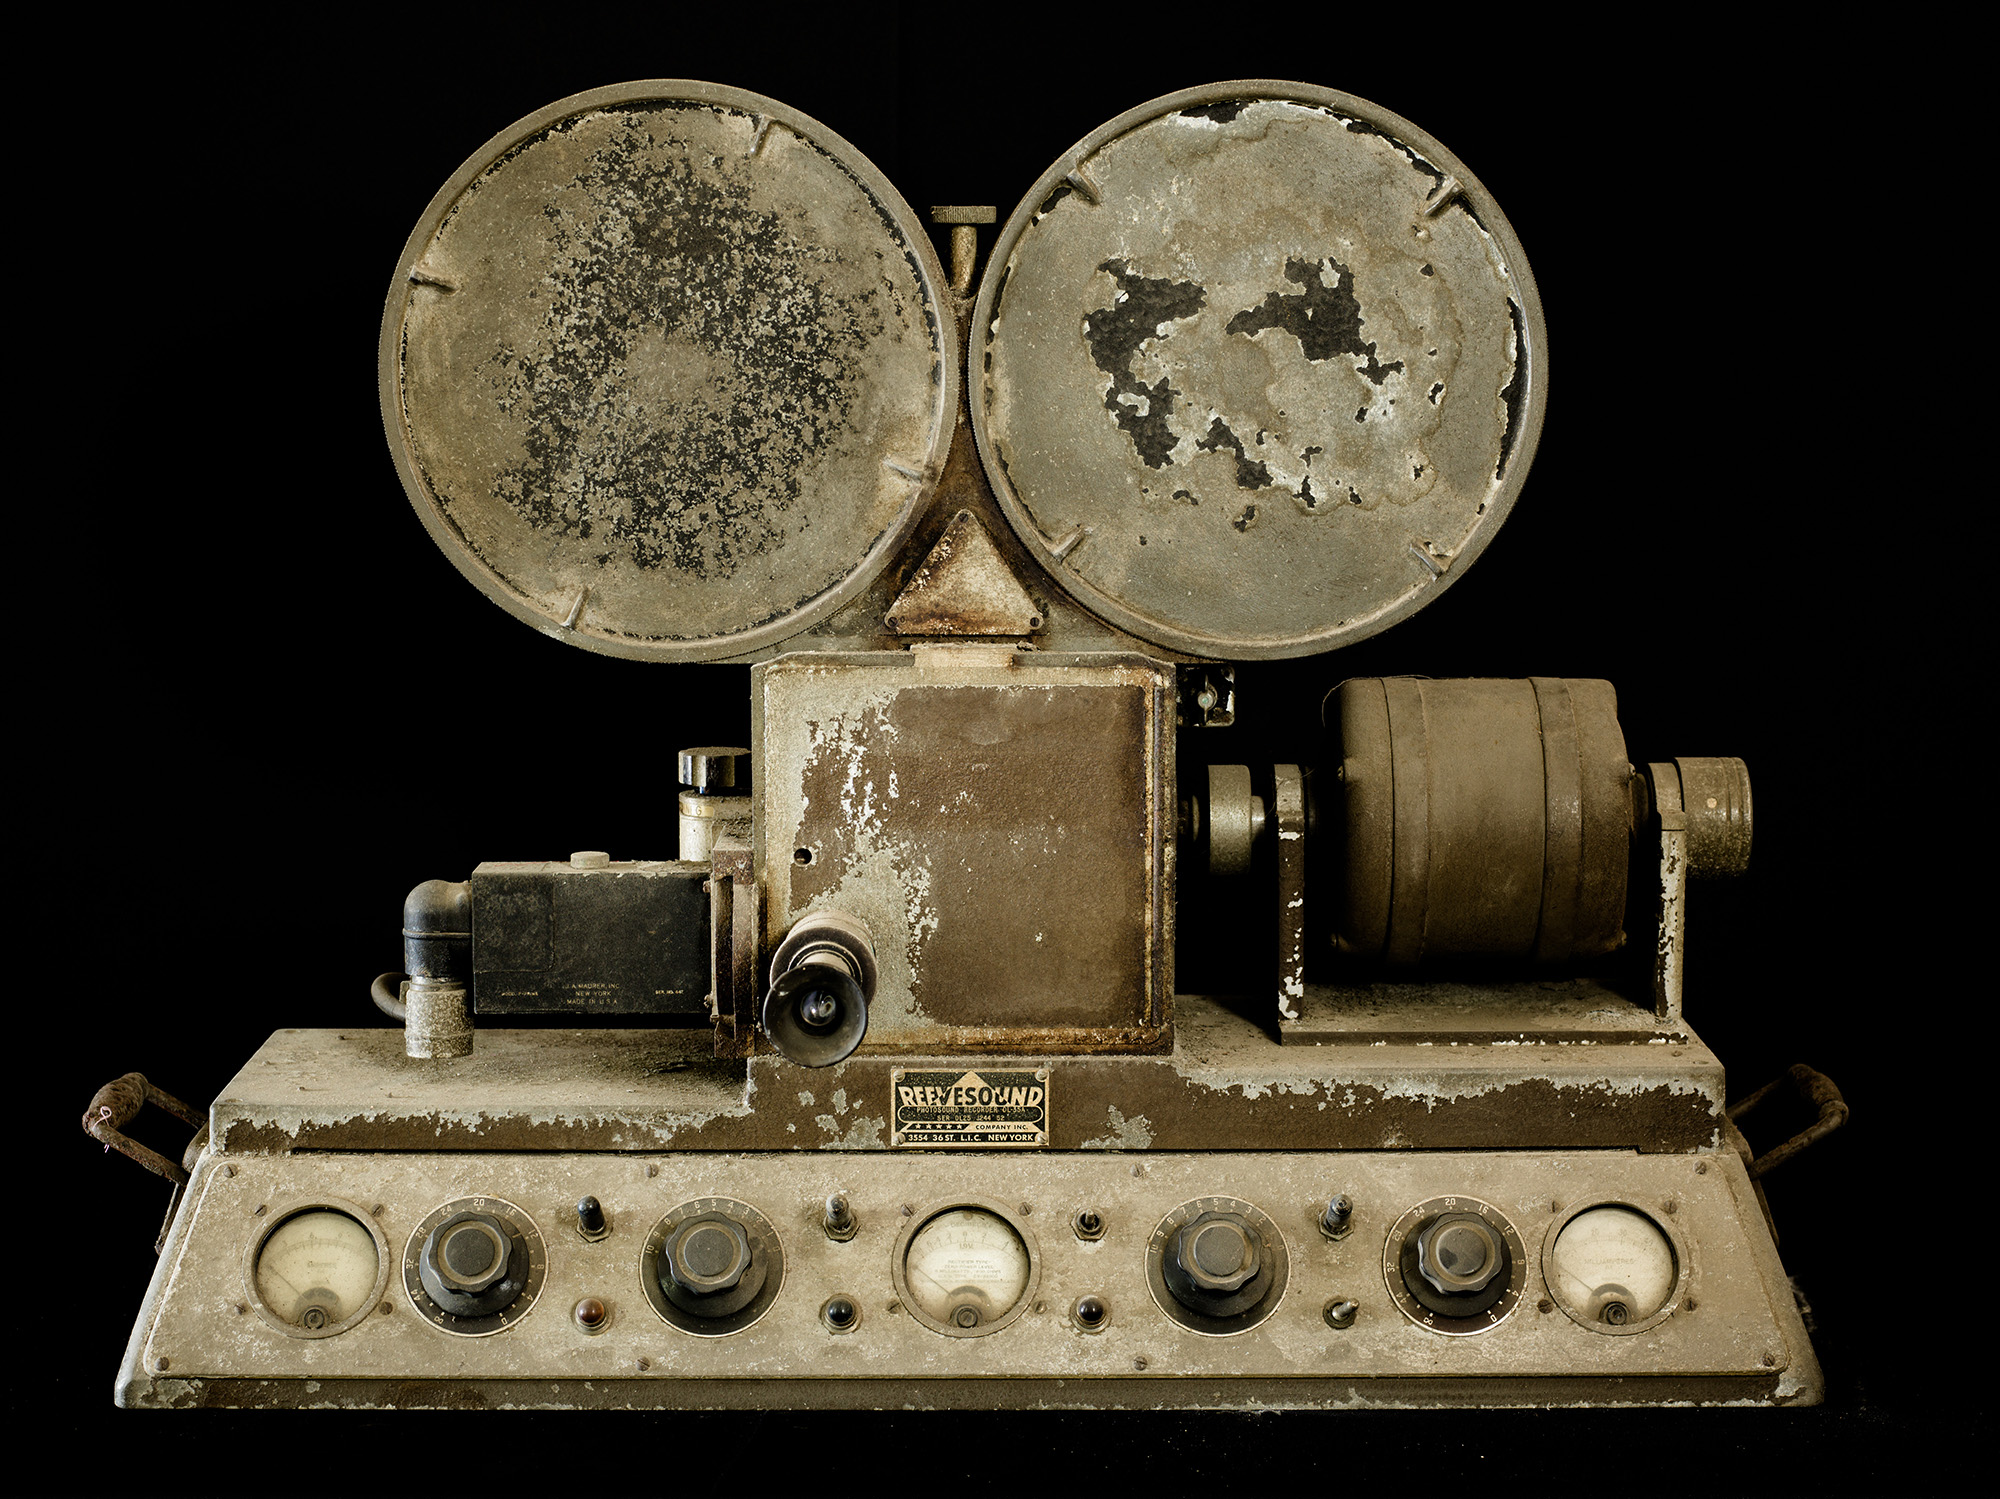 An American Reevesound photo sound recorder.